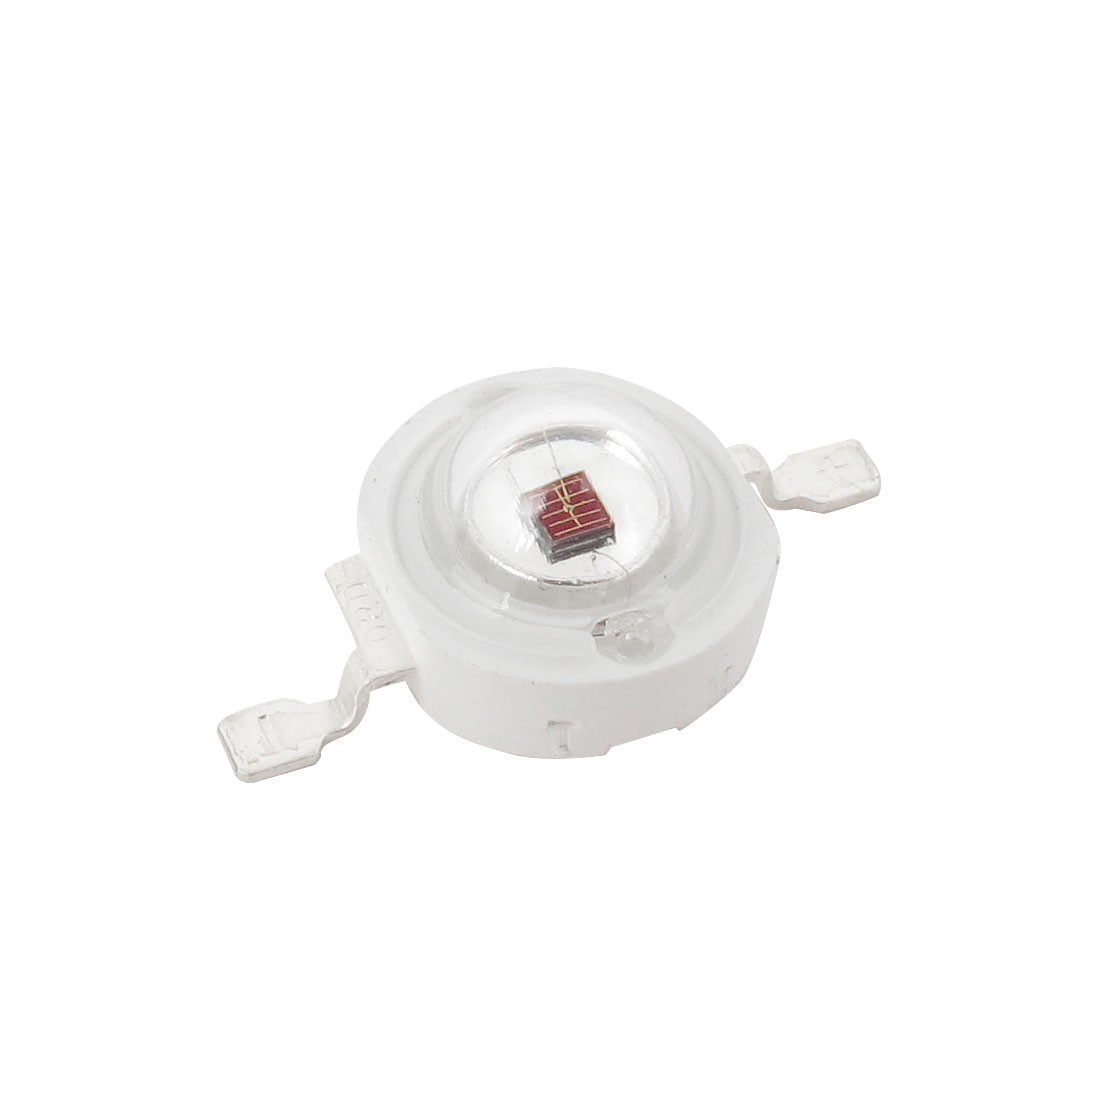 3W High Power 40-60LM 2 Terminal Blue Light LED Lamp Diodes Red Bead